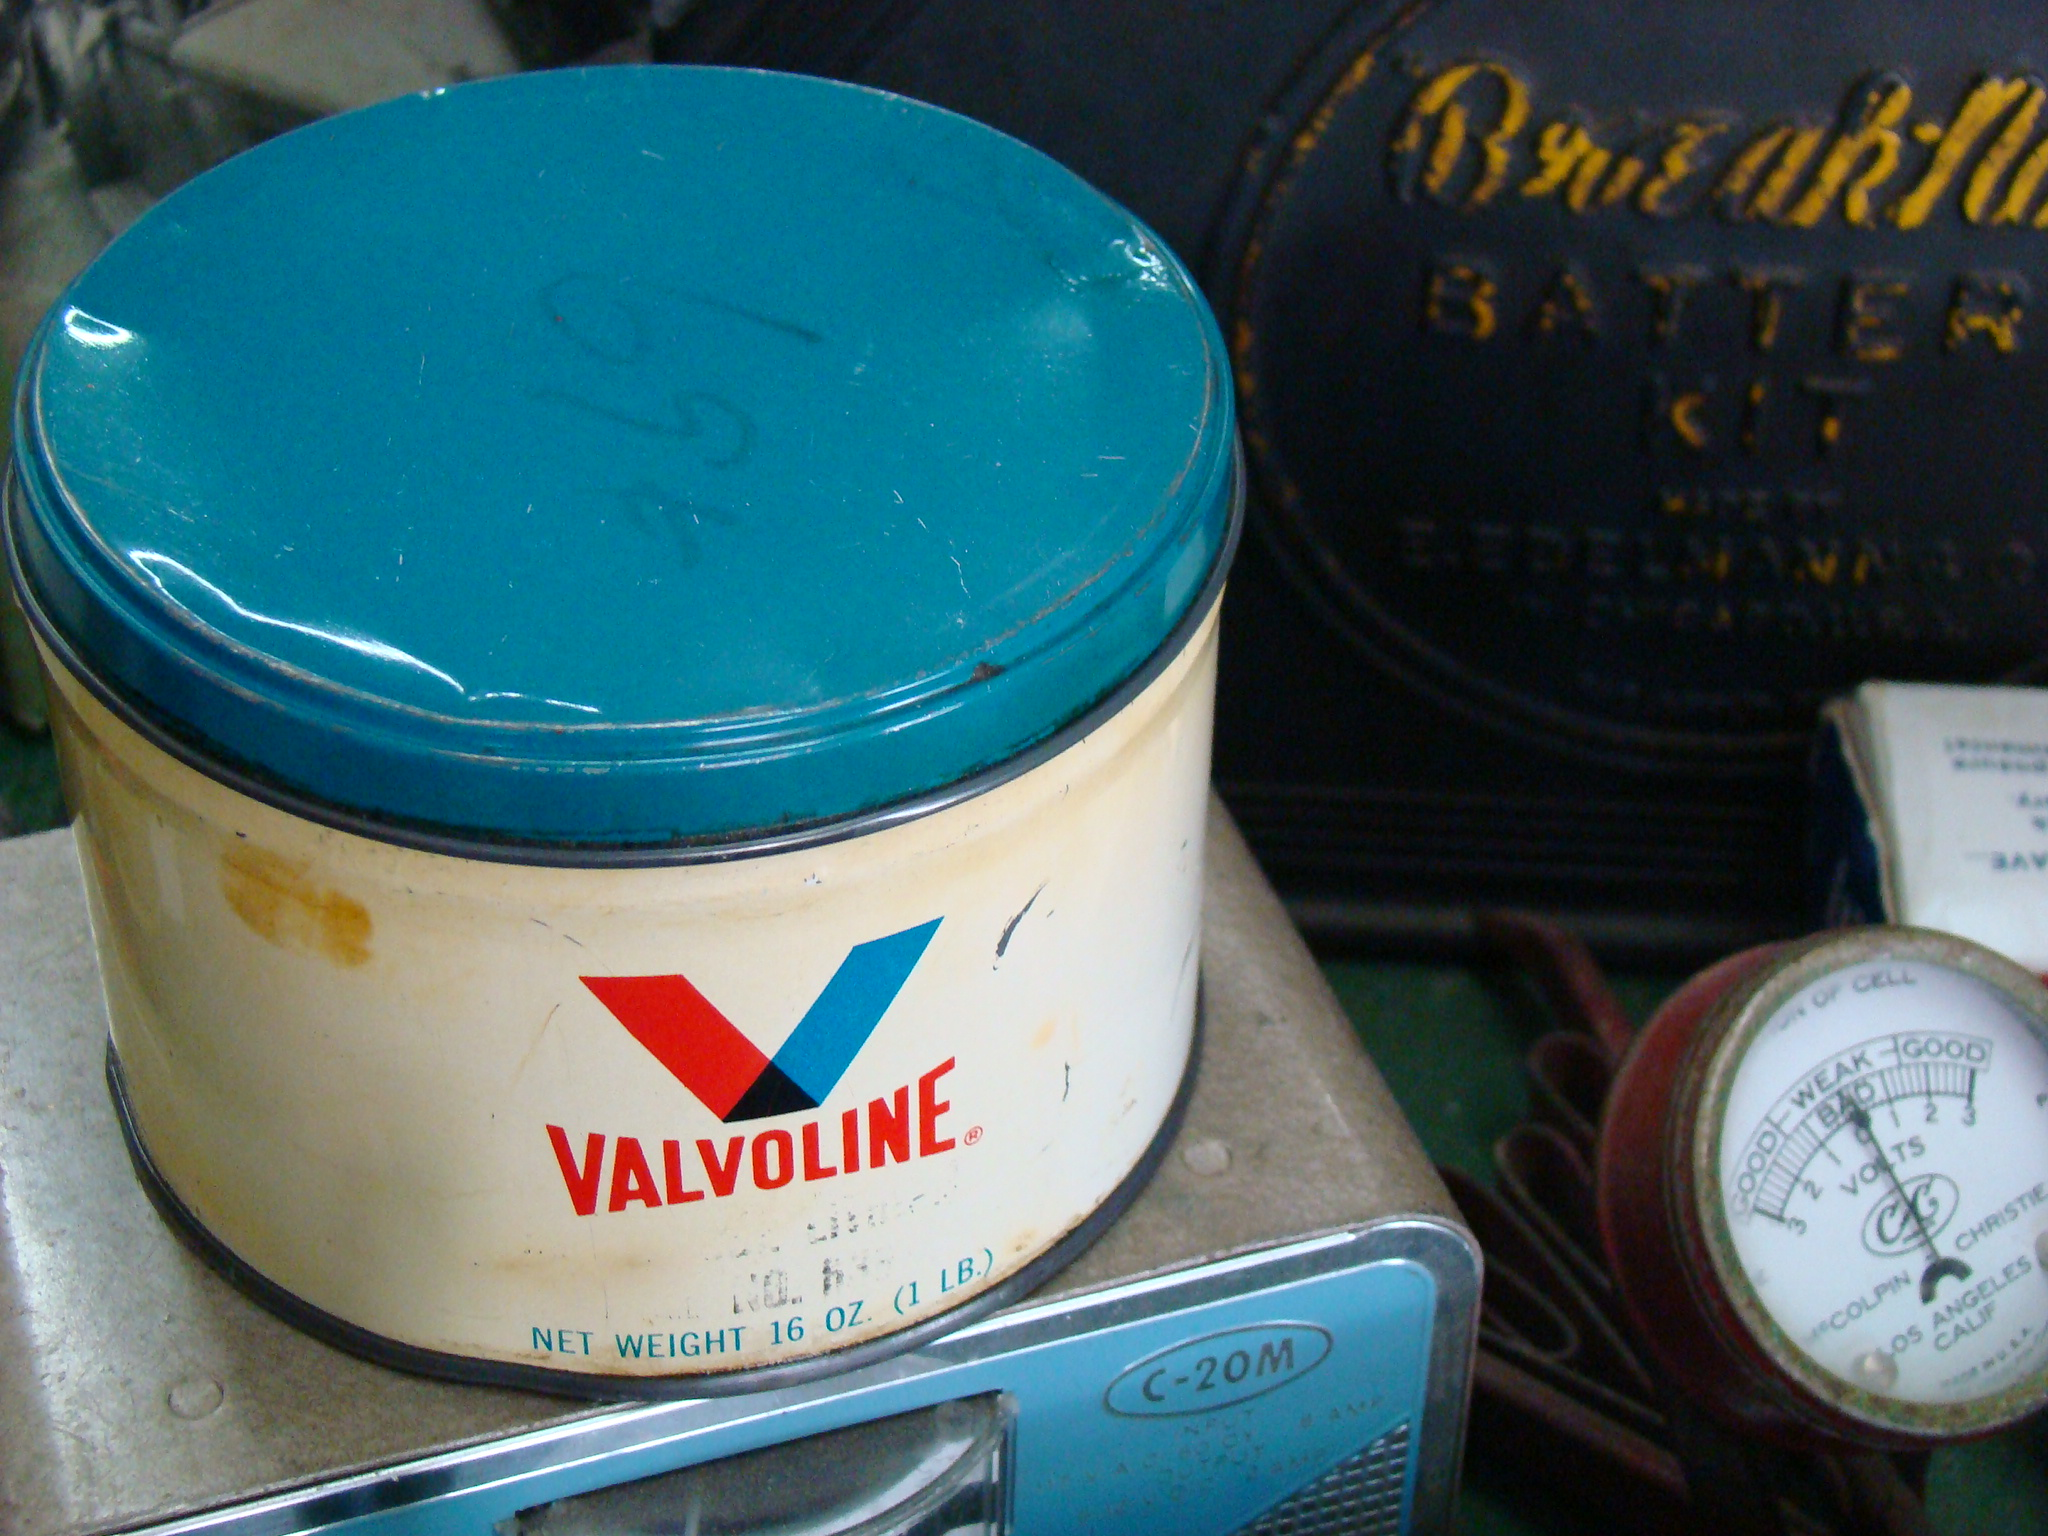 Valvoline Grease Can One Pound 34 FULL   Grumps Garage 2048x1536